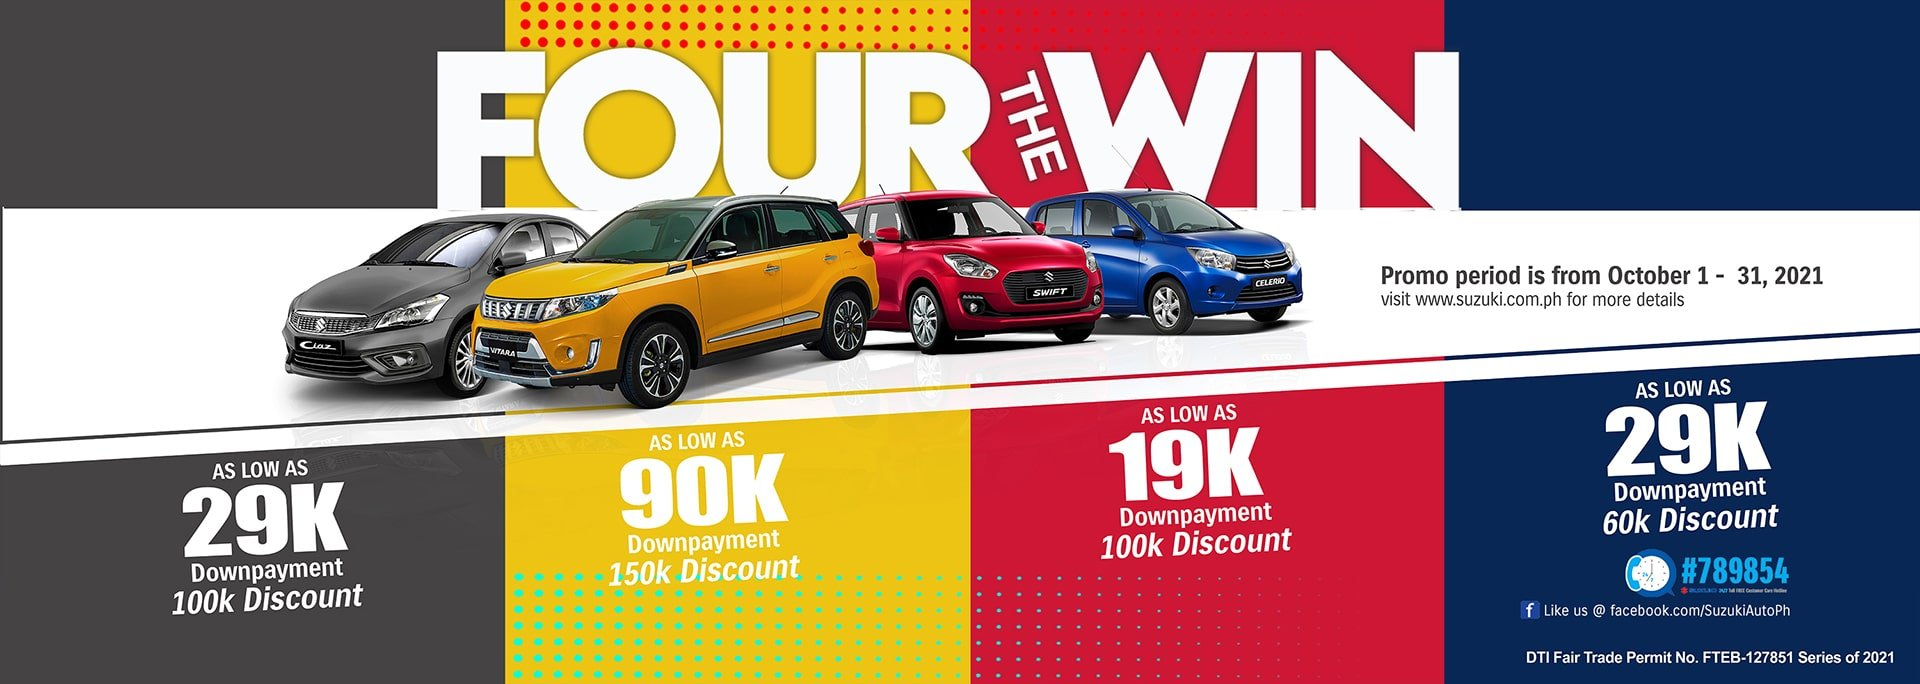 FOUR THE WIN OCTOBER PROMO